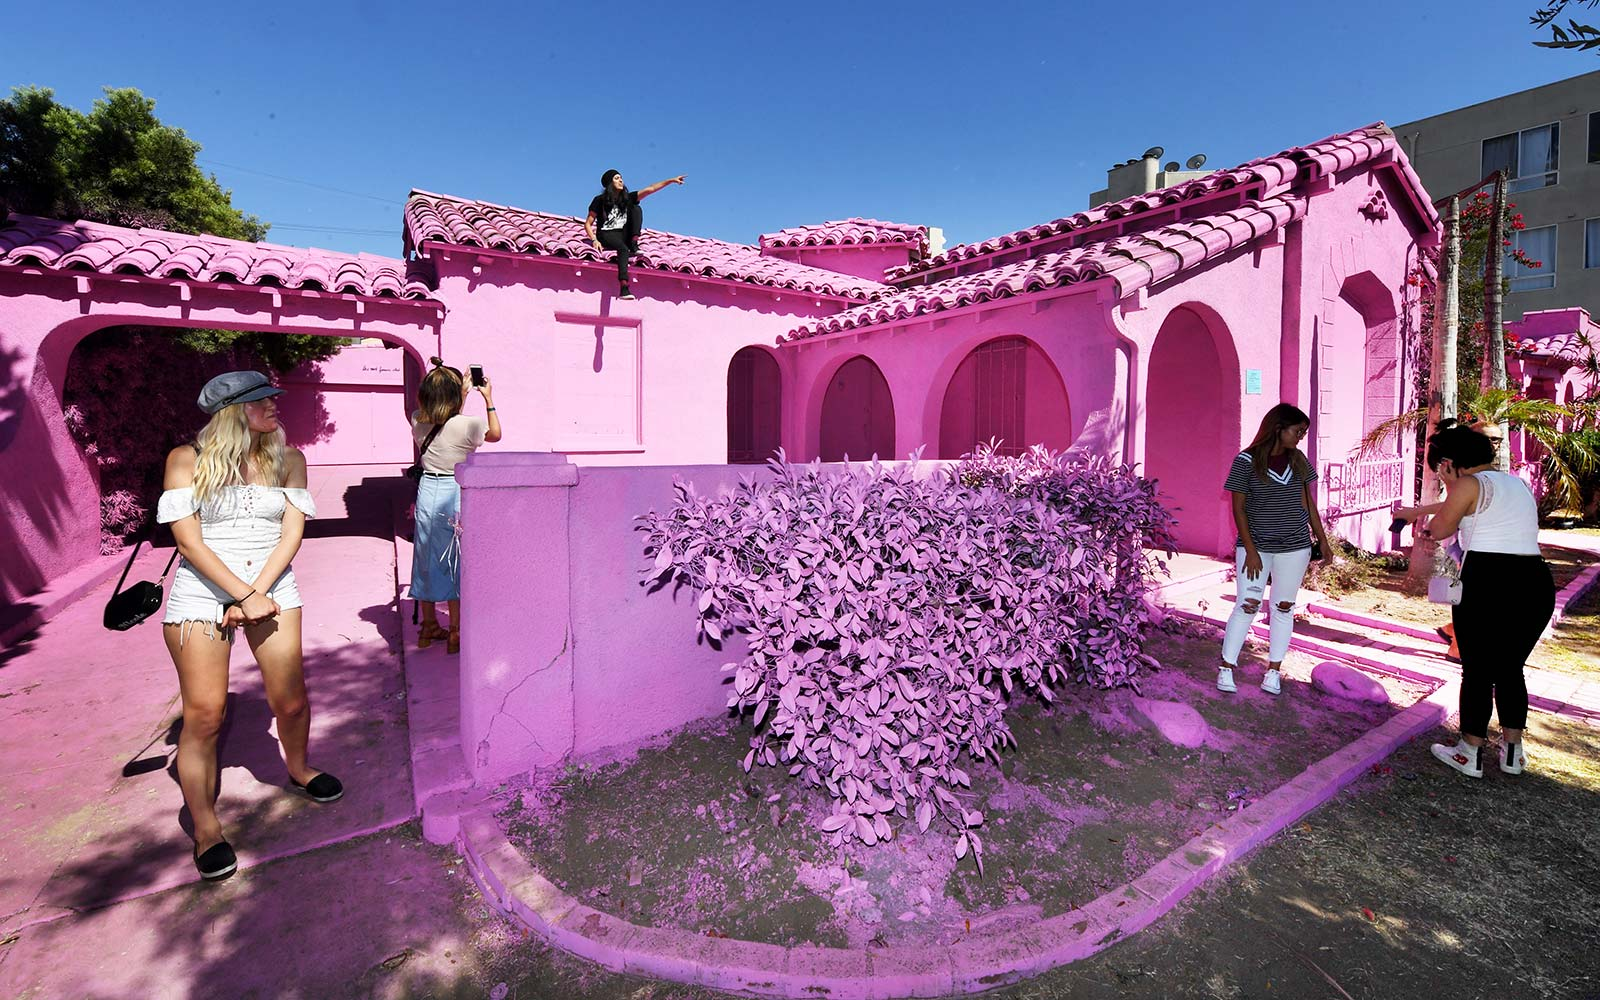 People Are Going Wild for These Hot Pink Houses